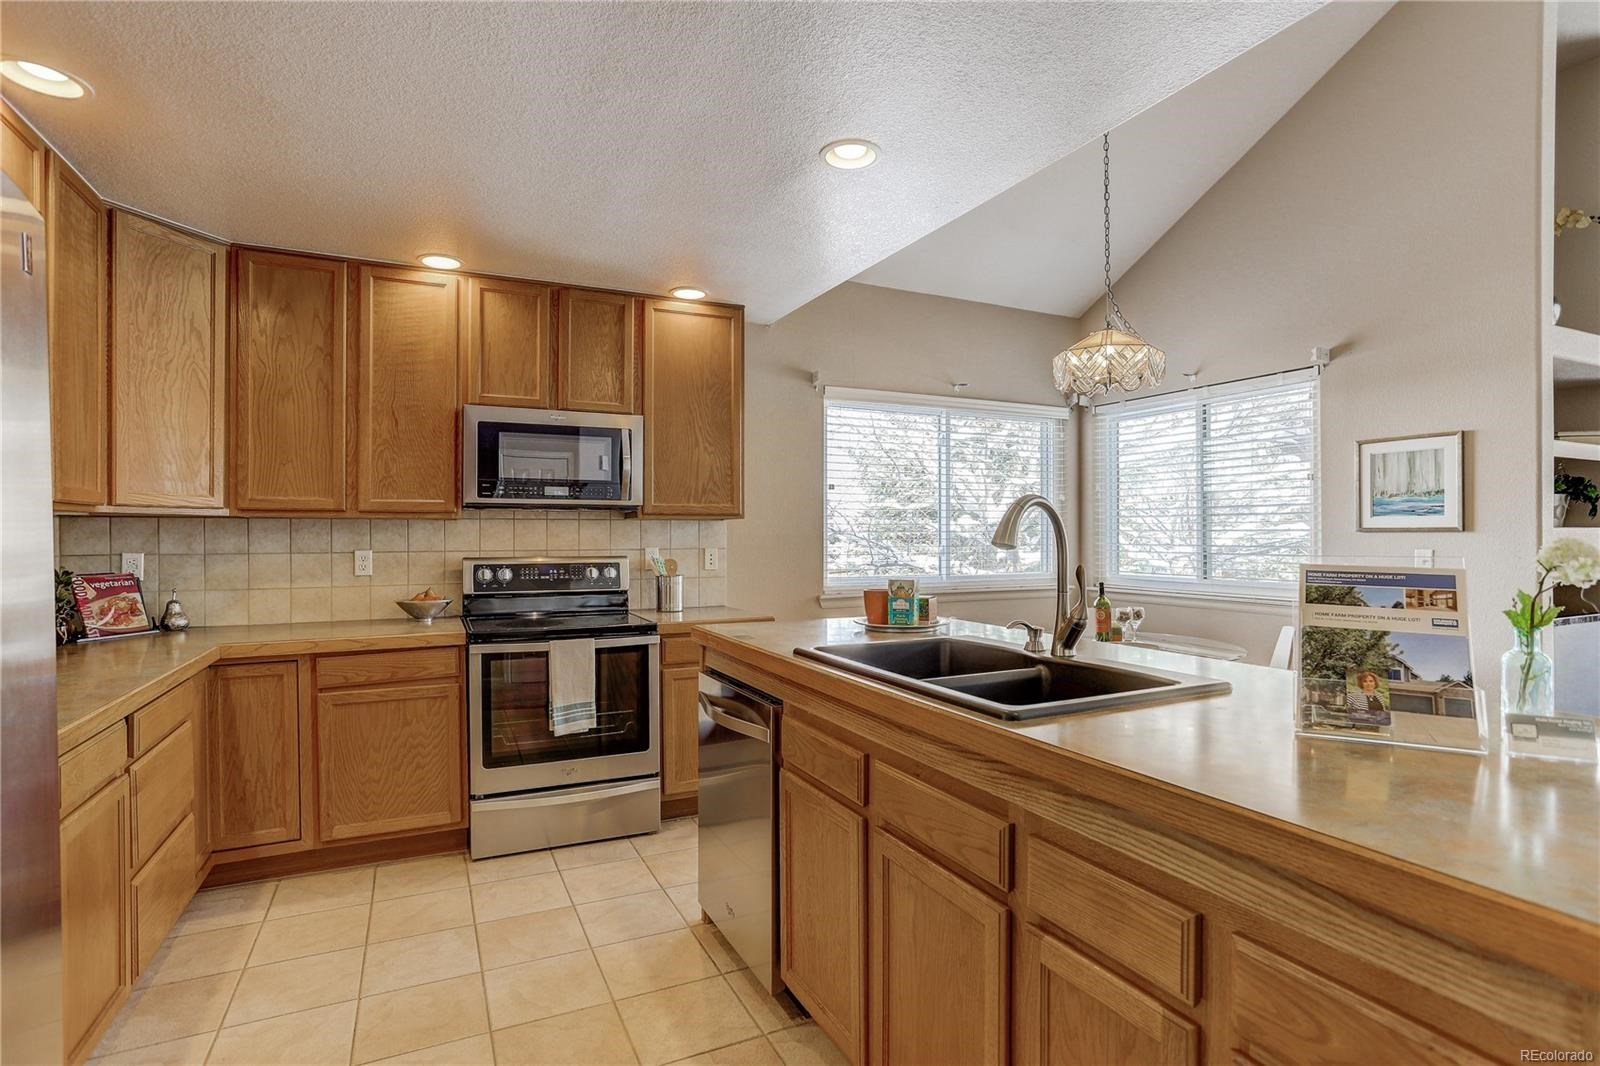 MLS# 8327774 - 9 - 806 W 127th Court, Westminster, CO 80234